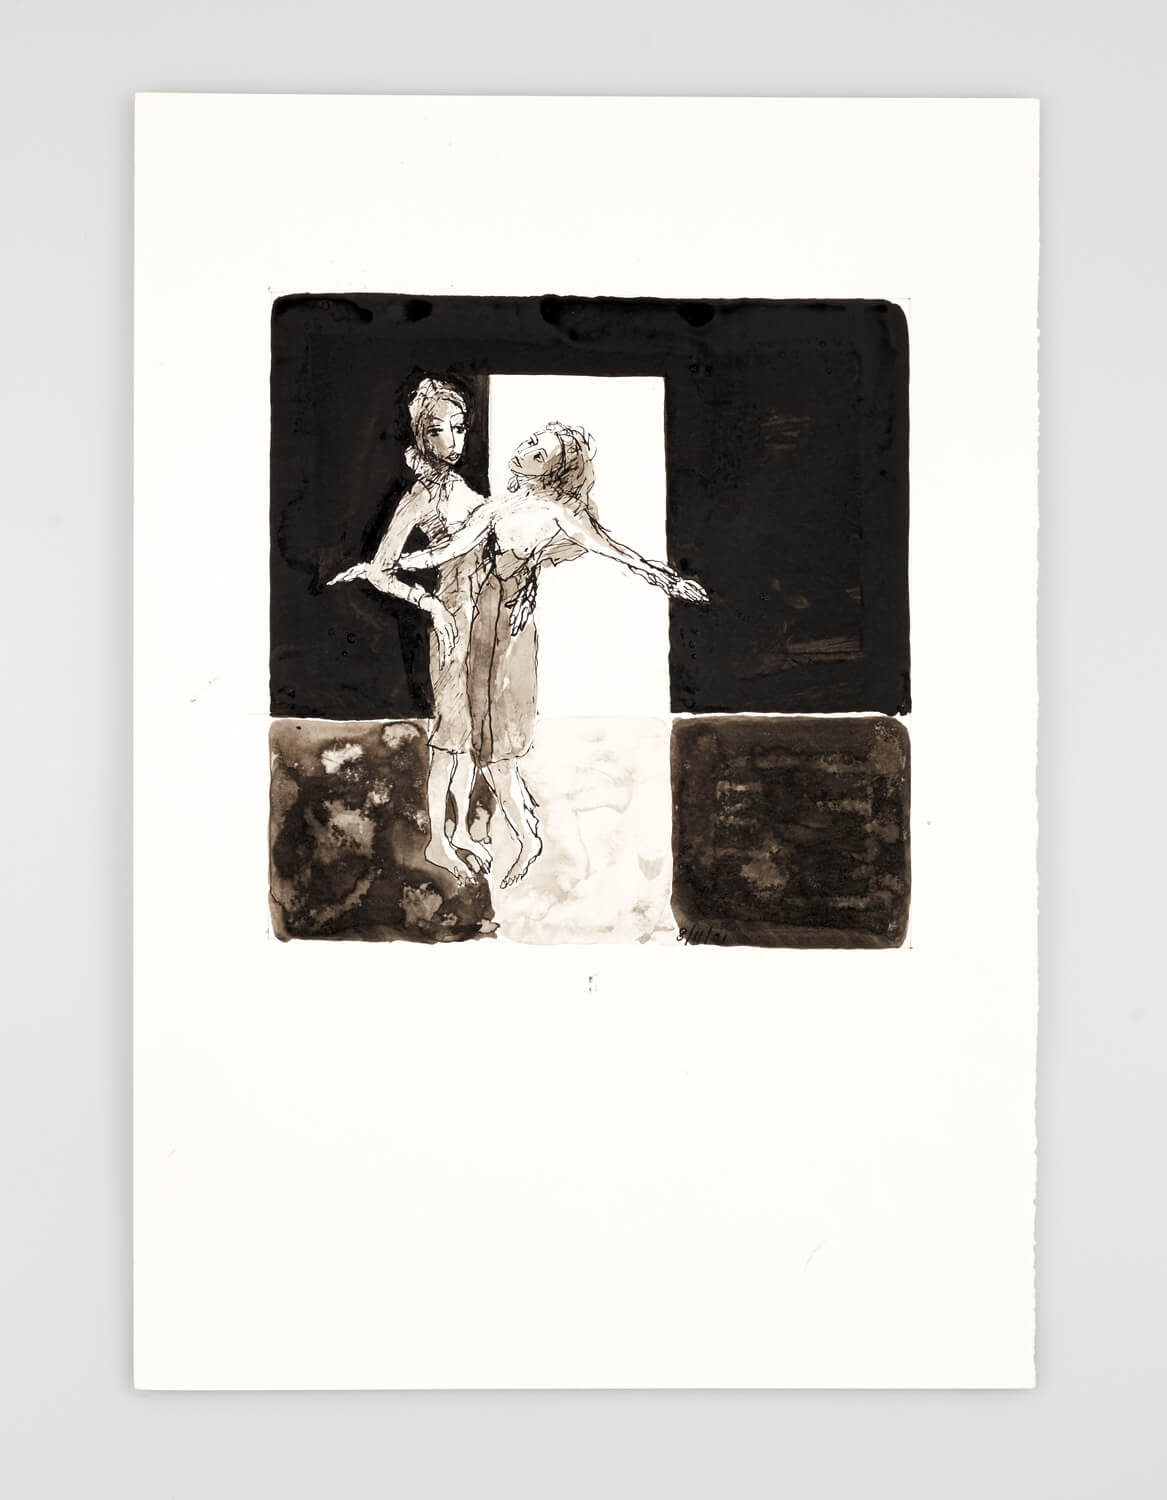 JB022 - Two Women - I'm in love with you - 2001 - 50 x 35 cm - Indian ink and wash on paper